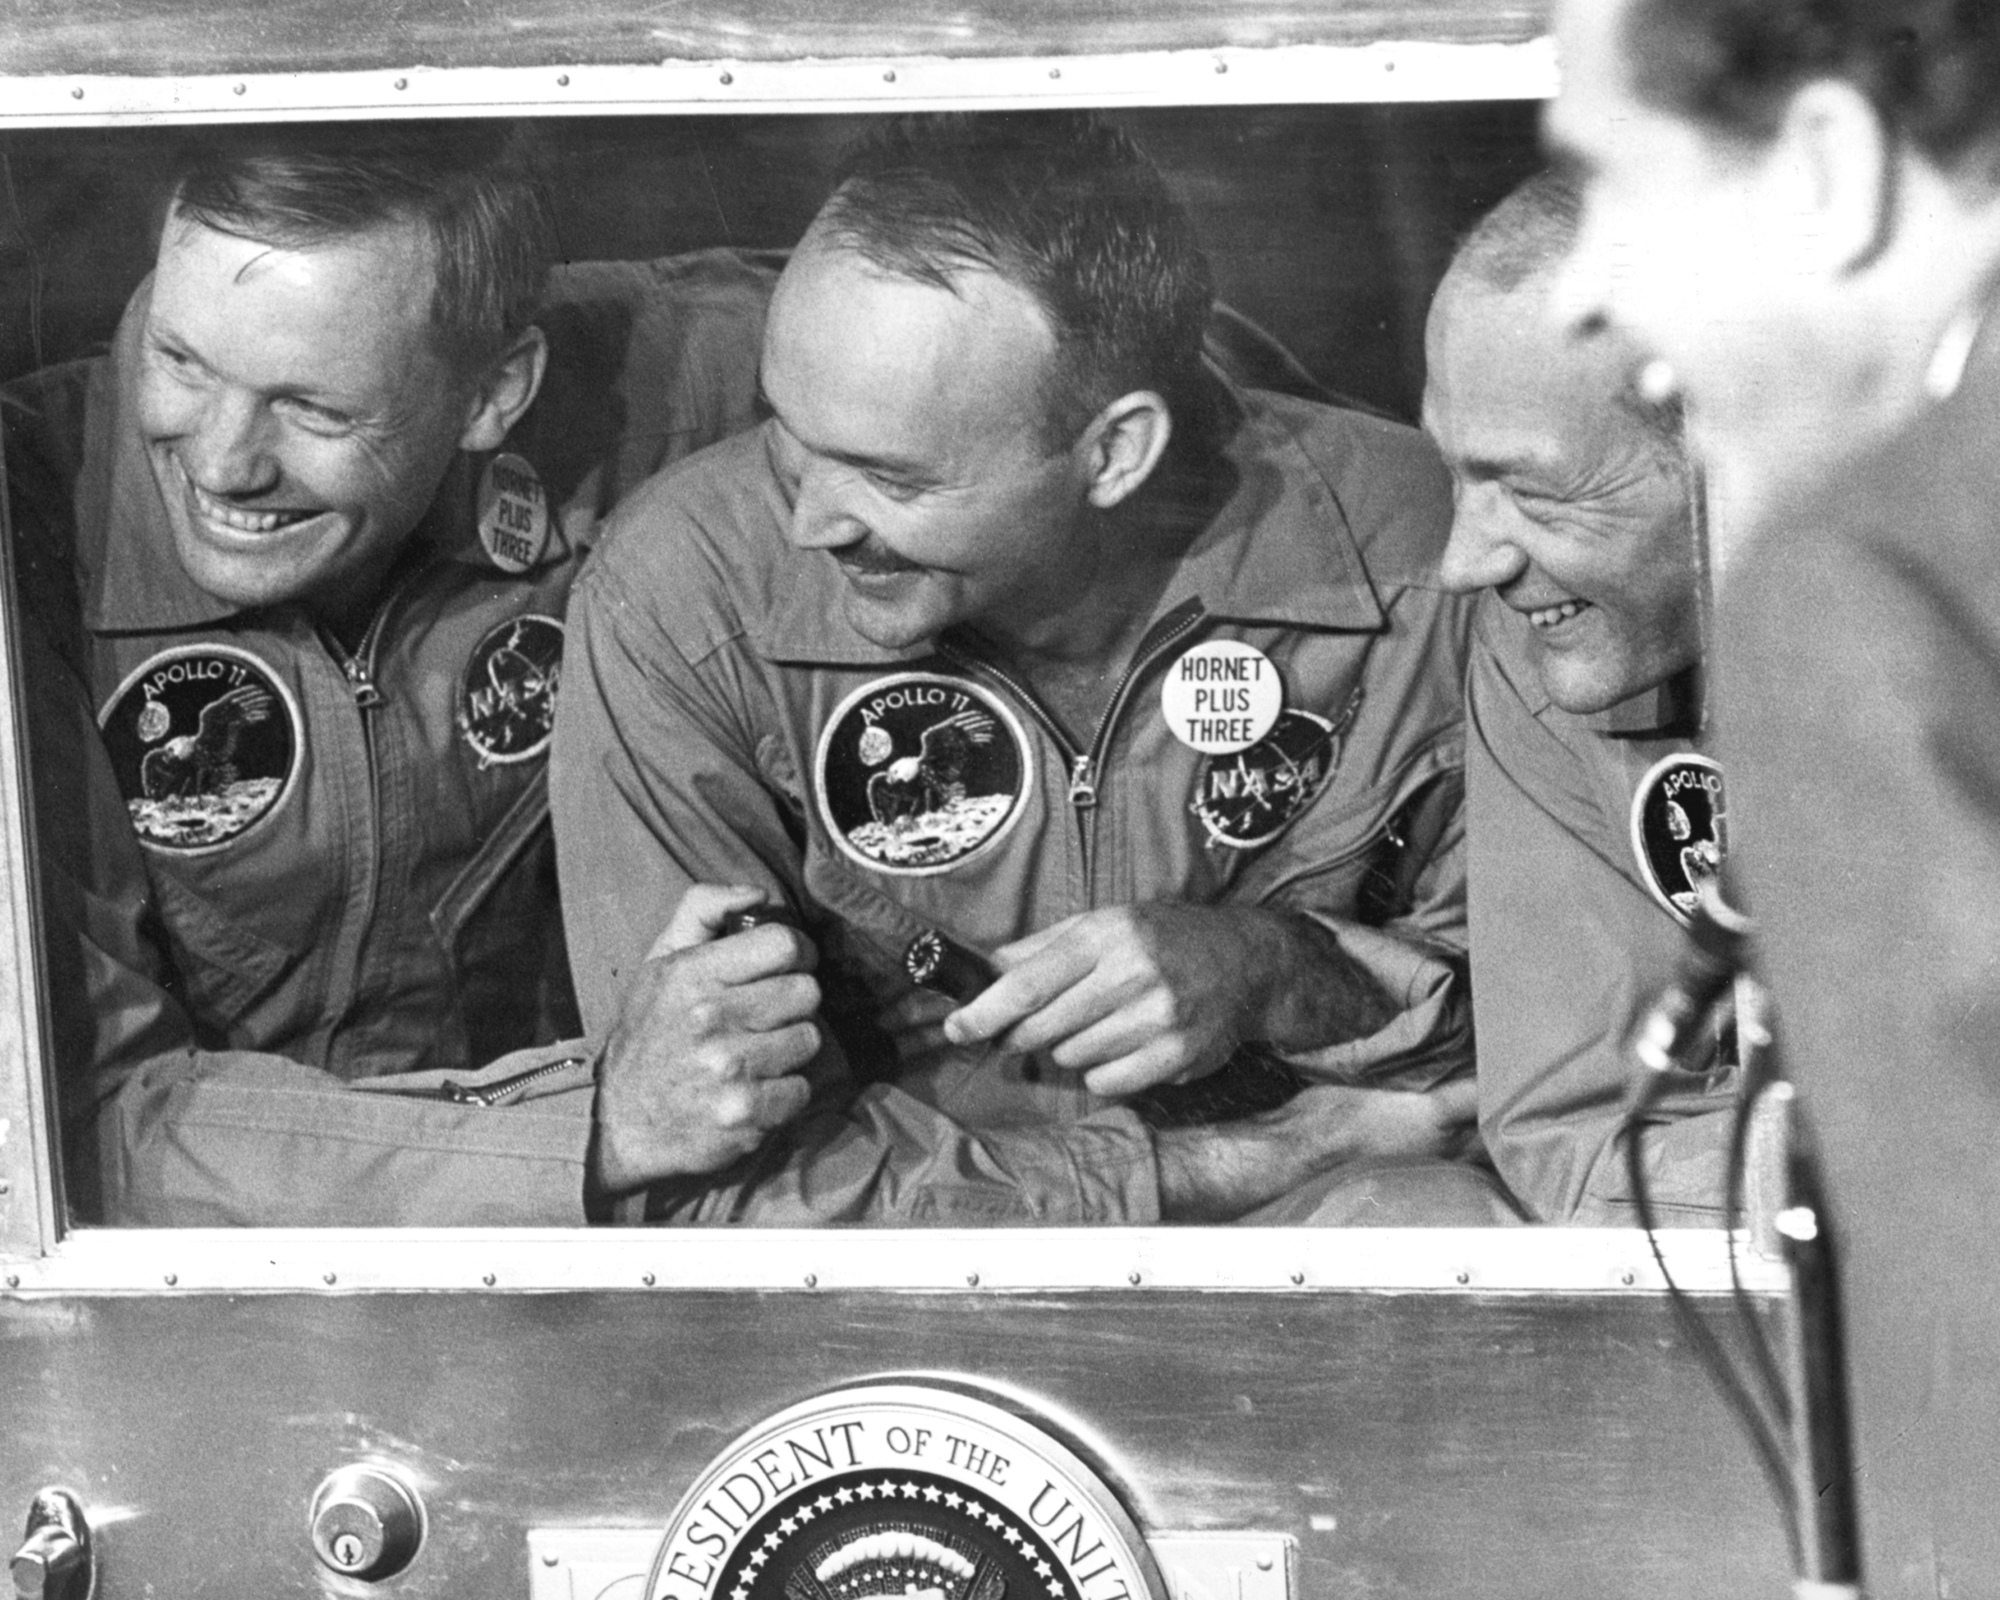 Apollo 11 laughing through quarantine window